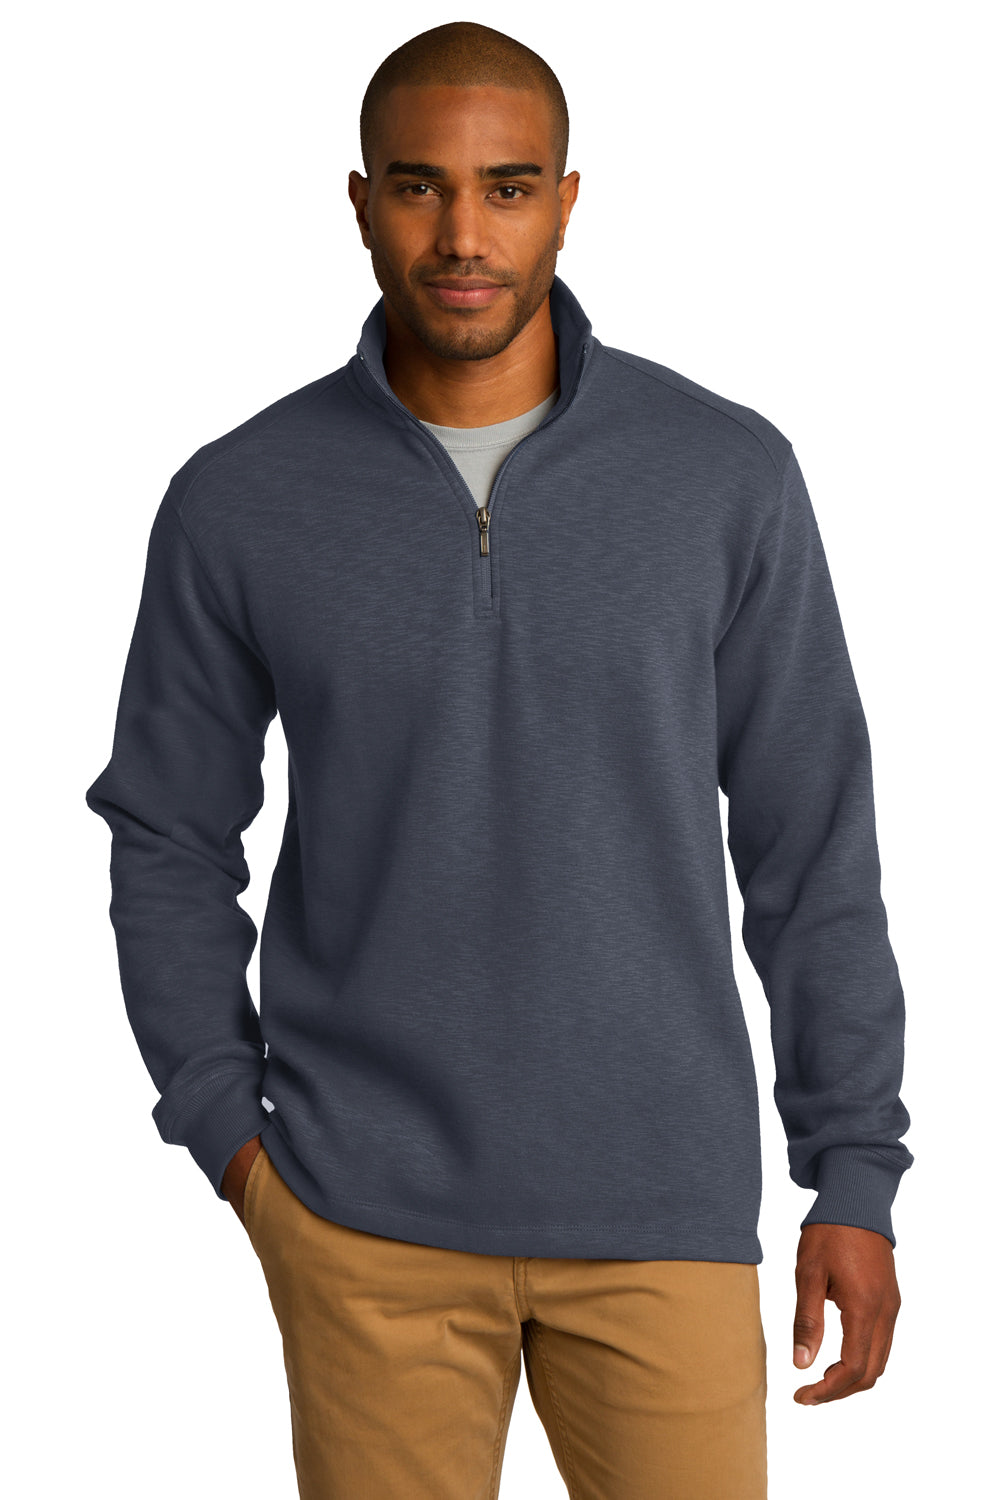 Port Authority F295 Mens Slub Fleece 1/4 Zip Sweatshirt Slate Grey Front